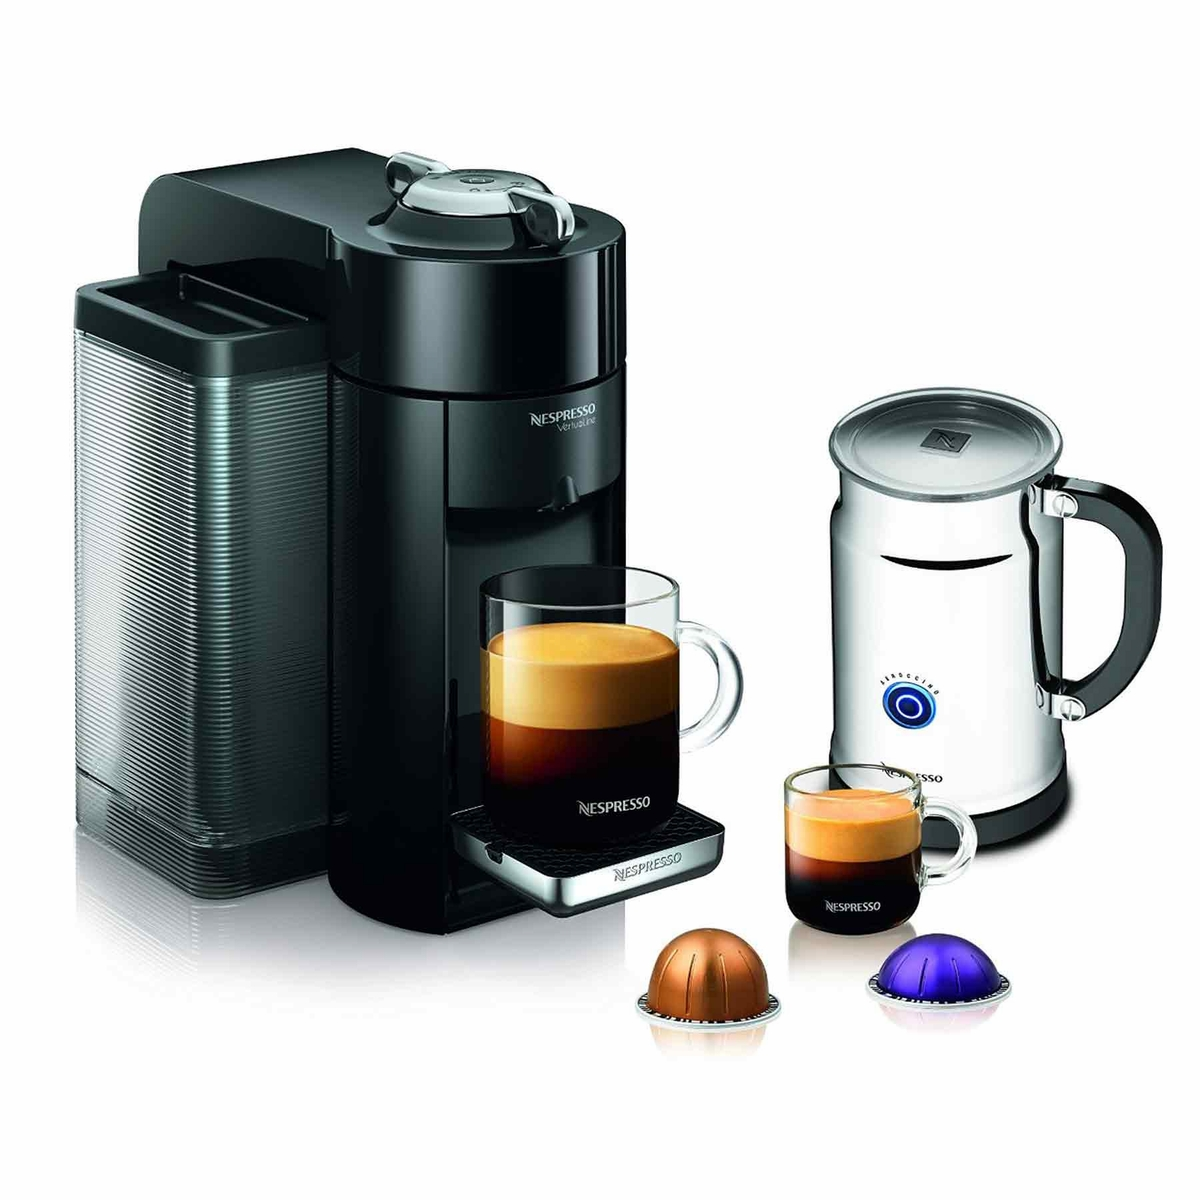 Nespresso Vertuoline Evoluo Deluxe Espresso Maker With Aeroccino Plus Milk Frother Black